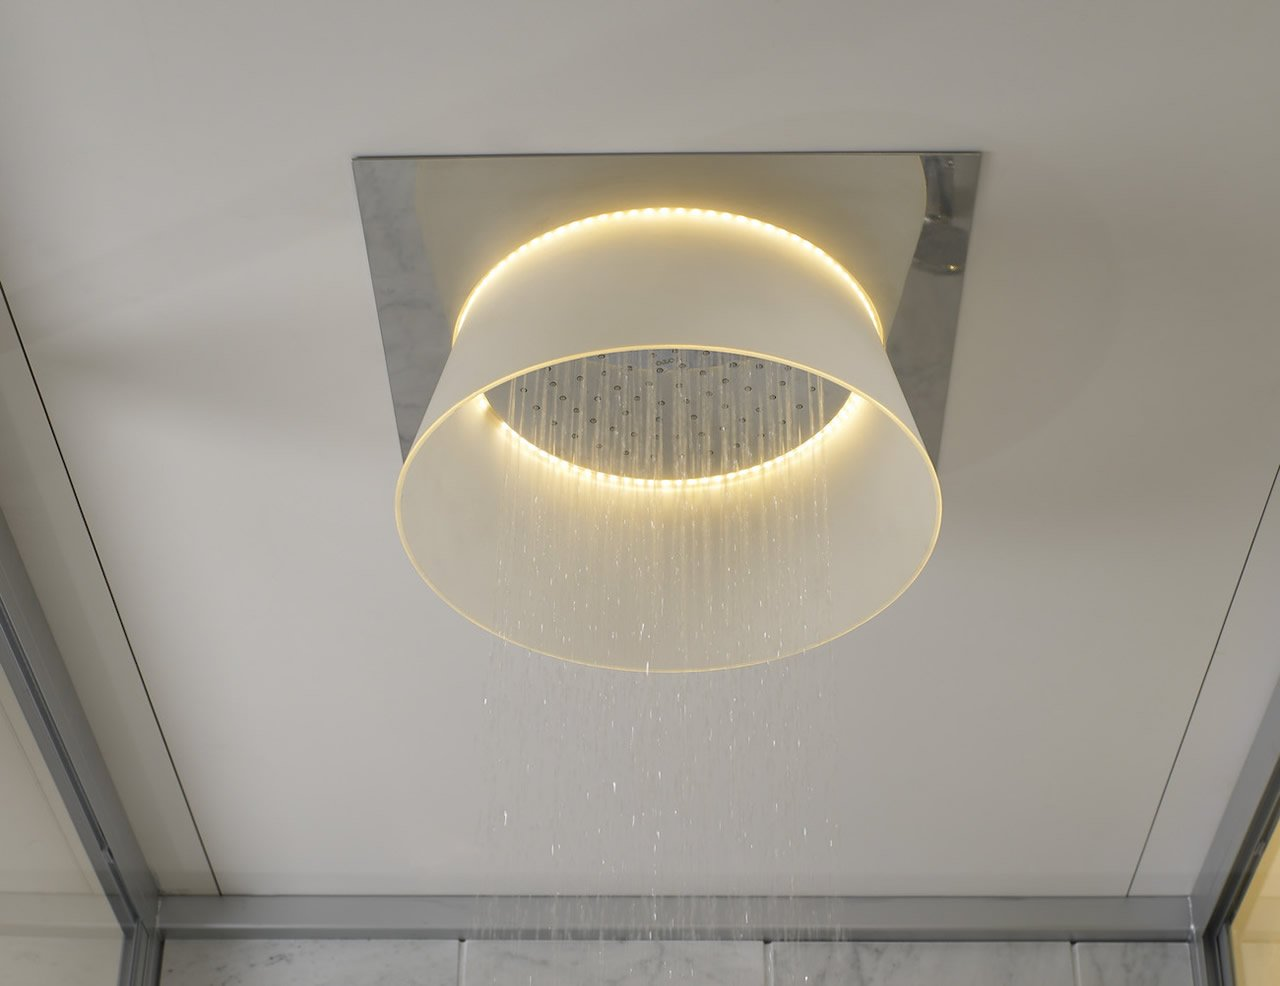 Shower ceiling lights downmodernhome light up your bathroom with s led ceiling mounted shower mozeypictures Choice Image